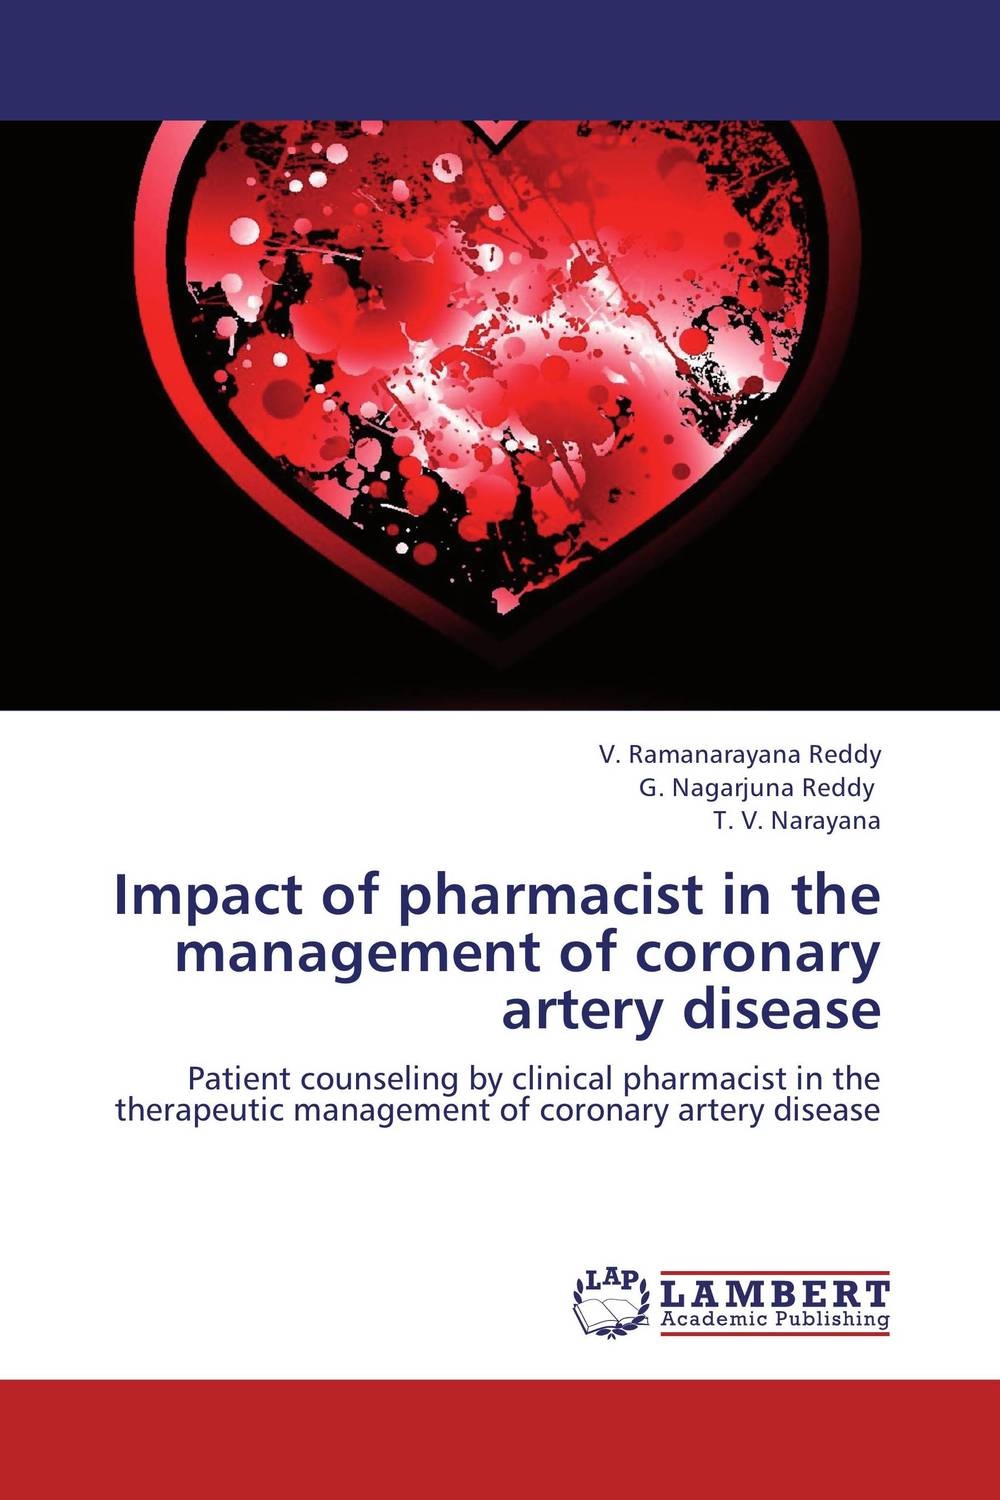 Impact of pharmacist in the management of coronary artery disease male anal plug stainless steel anal hook cock ring metal butt plug sex toys for men anal beads buttplug anus dilator stimulator